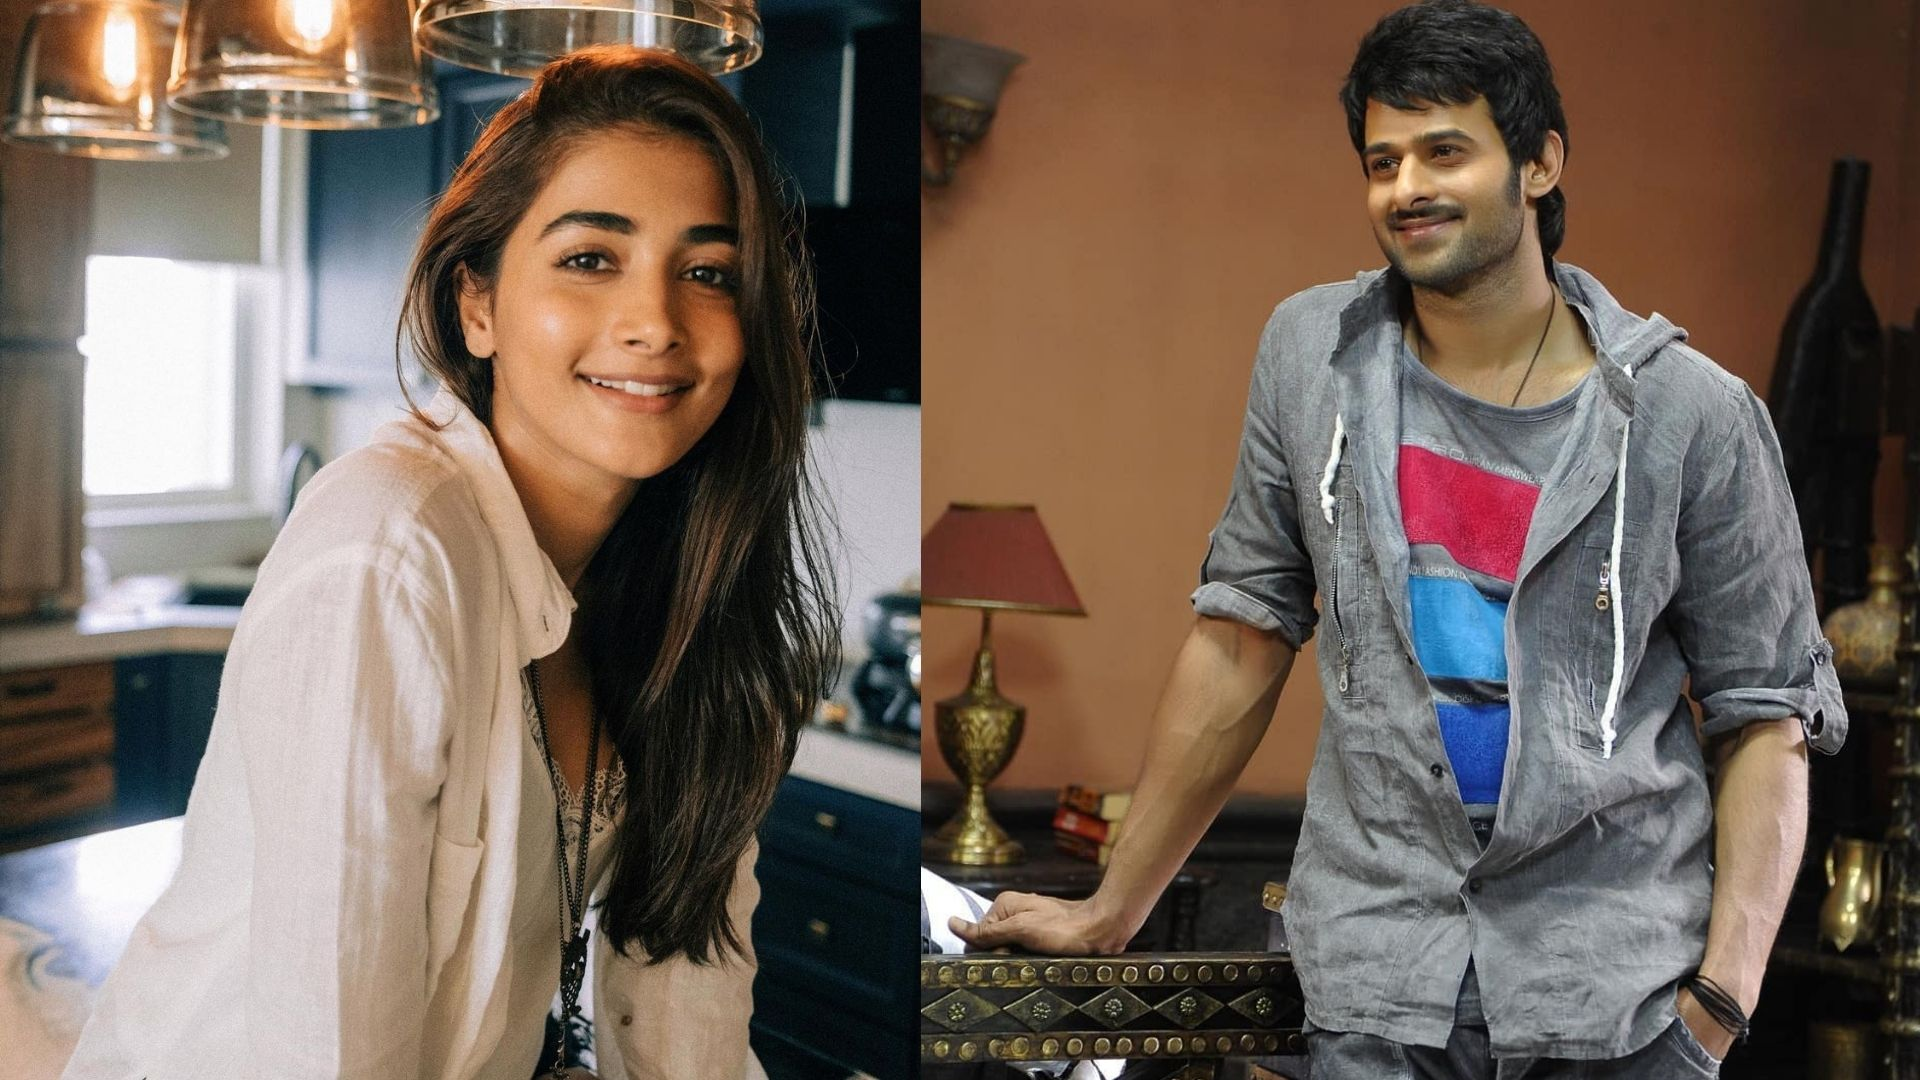 Prabhas Is 'Unhappy' With Radhe Shyam Co-star Pooja Hegde's Unprofessional Behaviour?; Producers Clear The Air